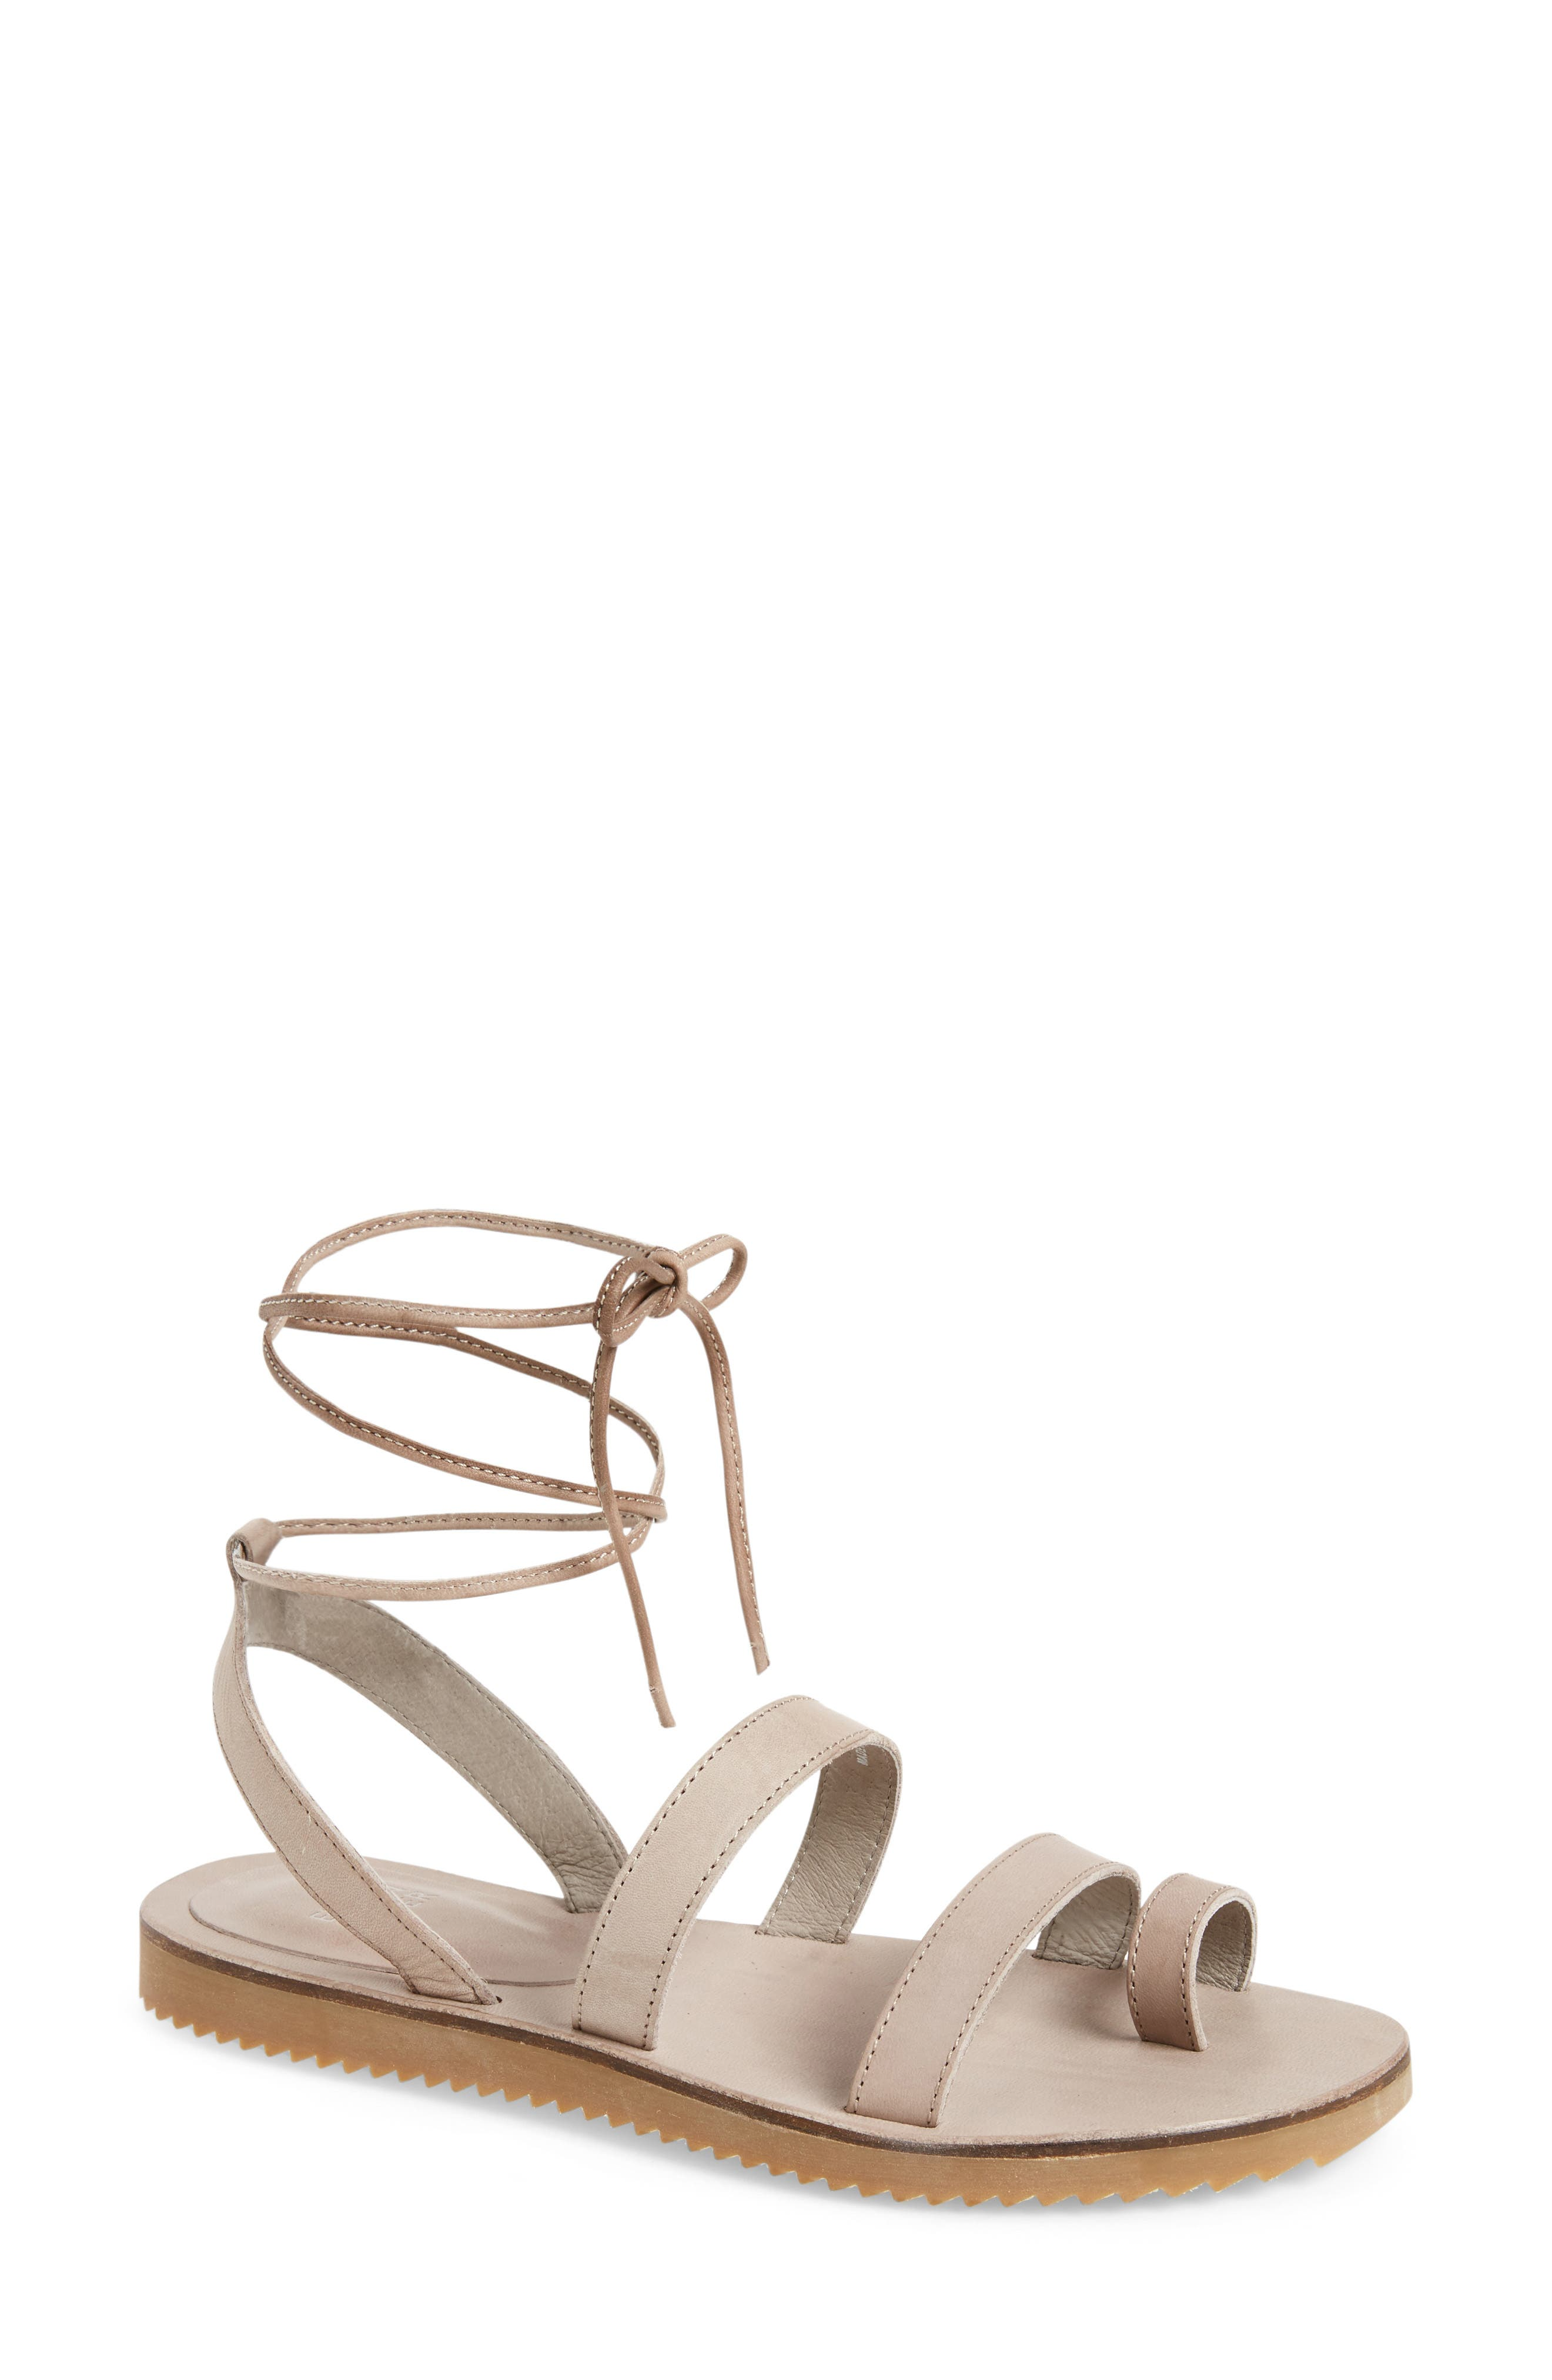 Alternate Image 1 Selected - Eileen Fisher Wales Lace-Up Sandal (Women)